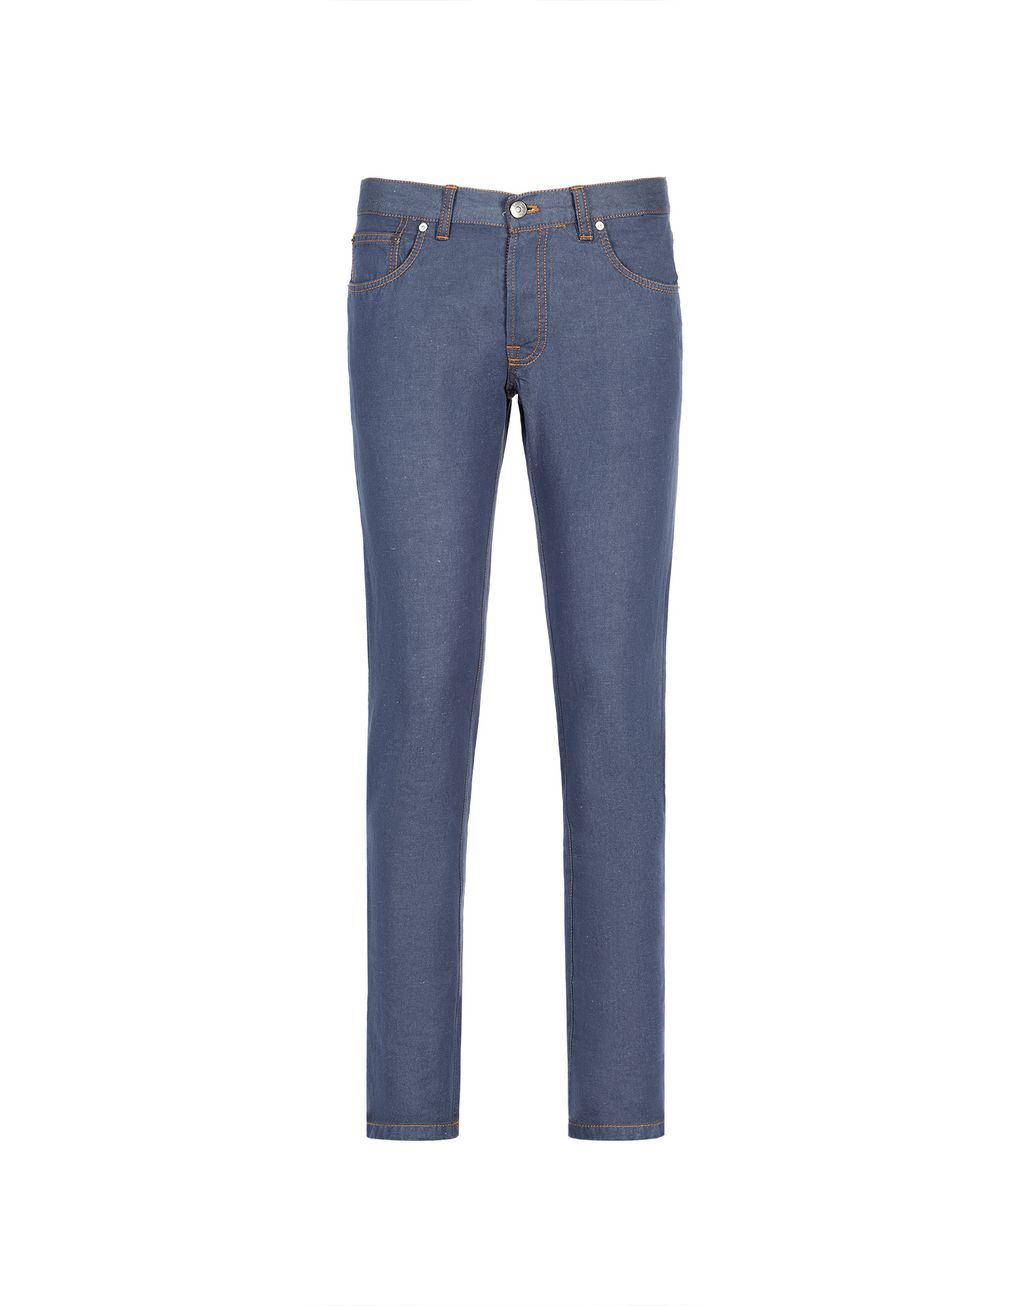 BRIONI Bluette Slim Fit Cotton and Linen Aneto Jeans  Denim Man f